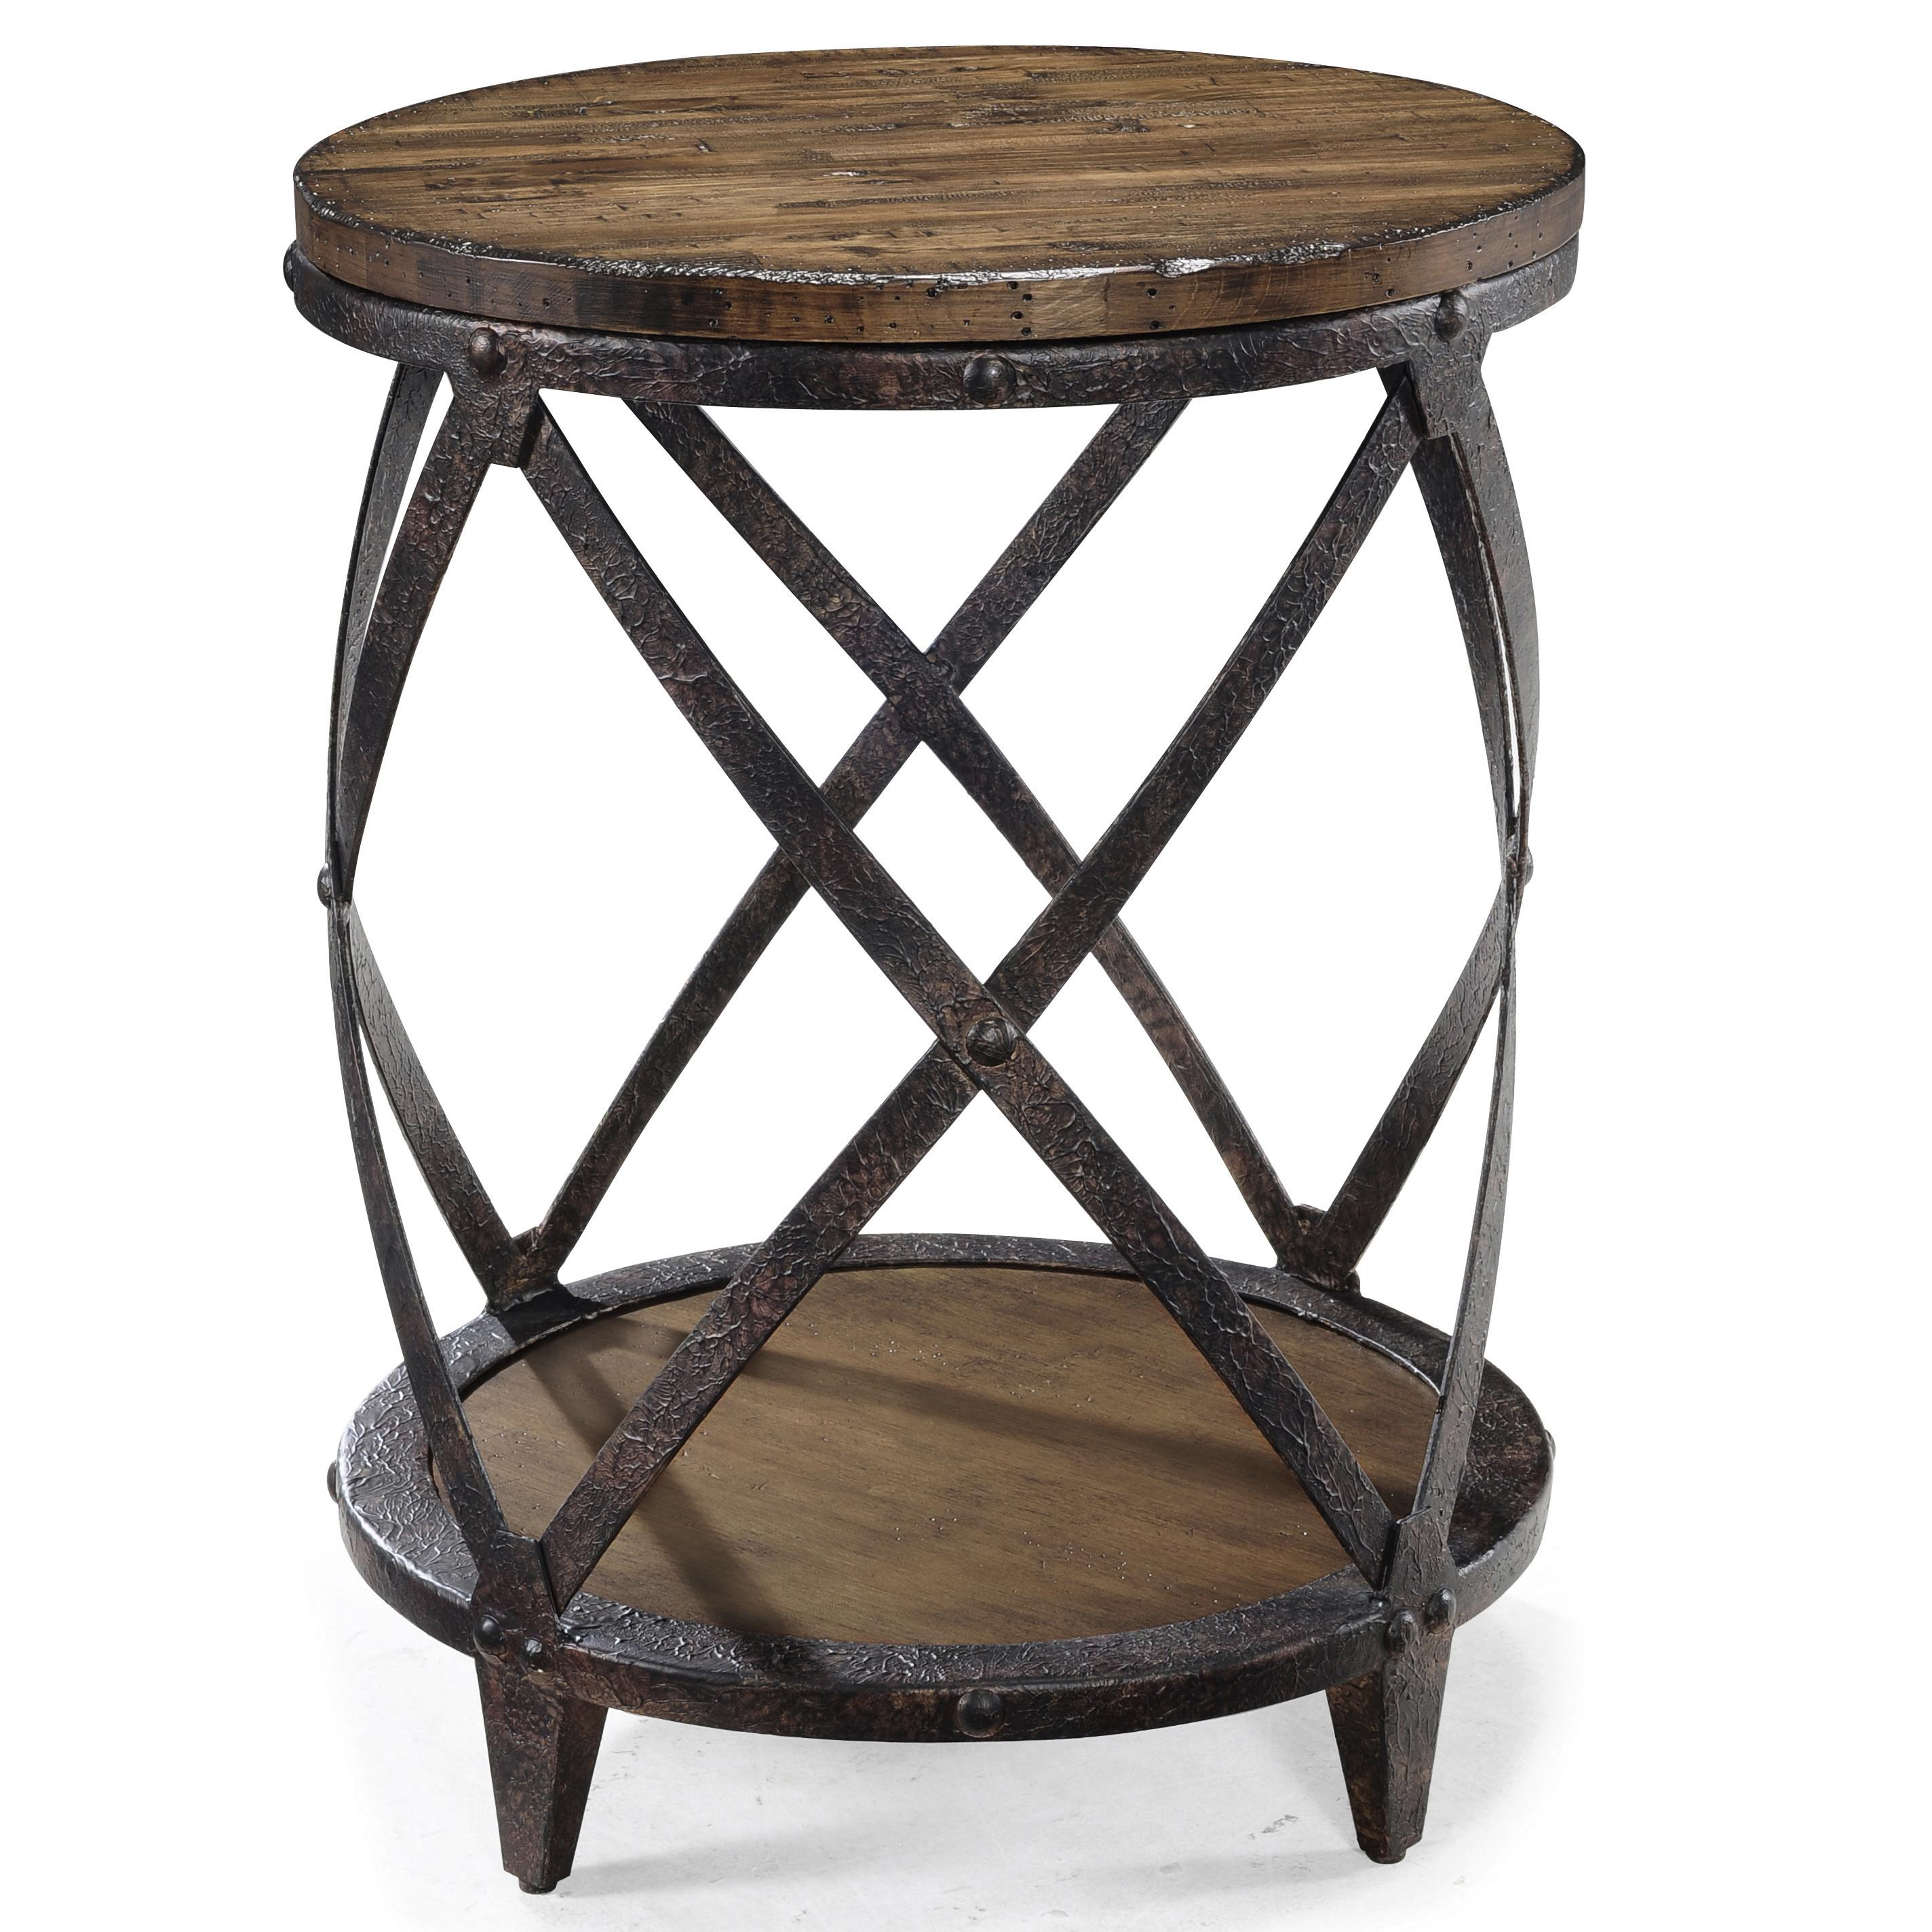 mango pedestal distressed tables faux surprising accent table small target wood white round wooden woodworking plans red appealing reclaimed and threshold metal full size allen